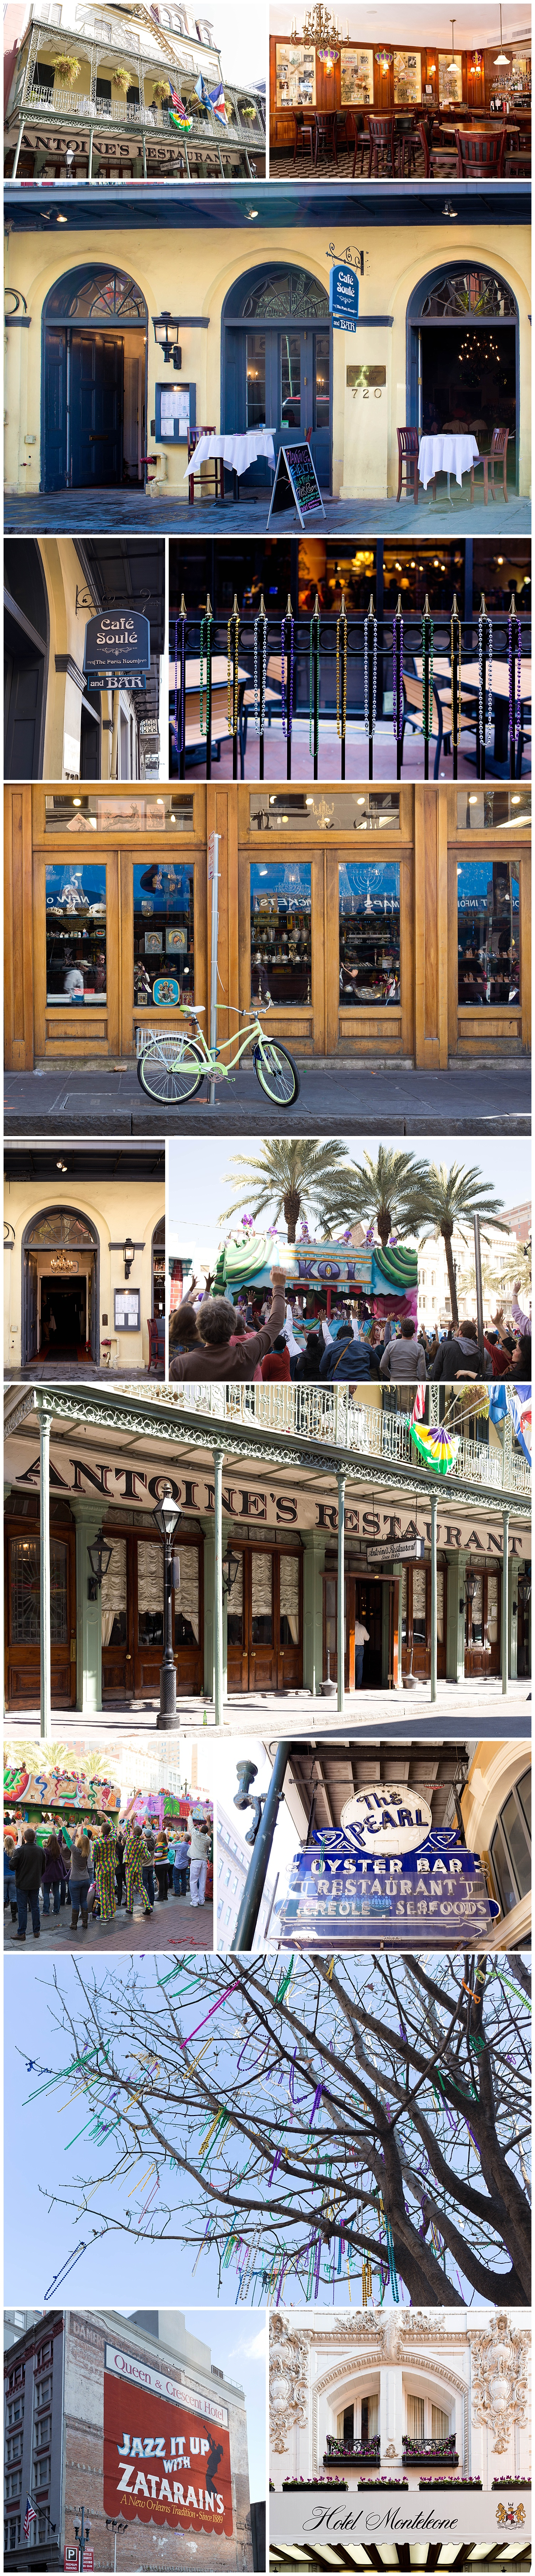 New Orleans restaurants, hotels, Mardi Gras parades and beads